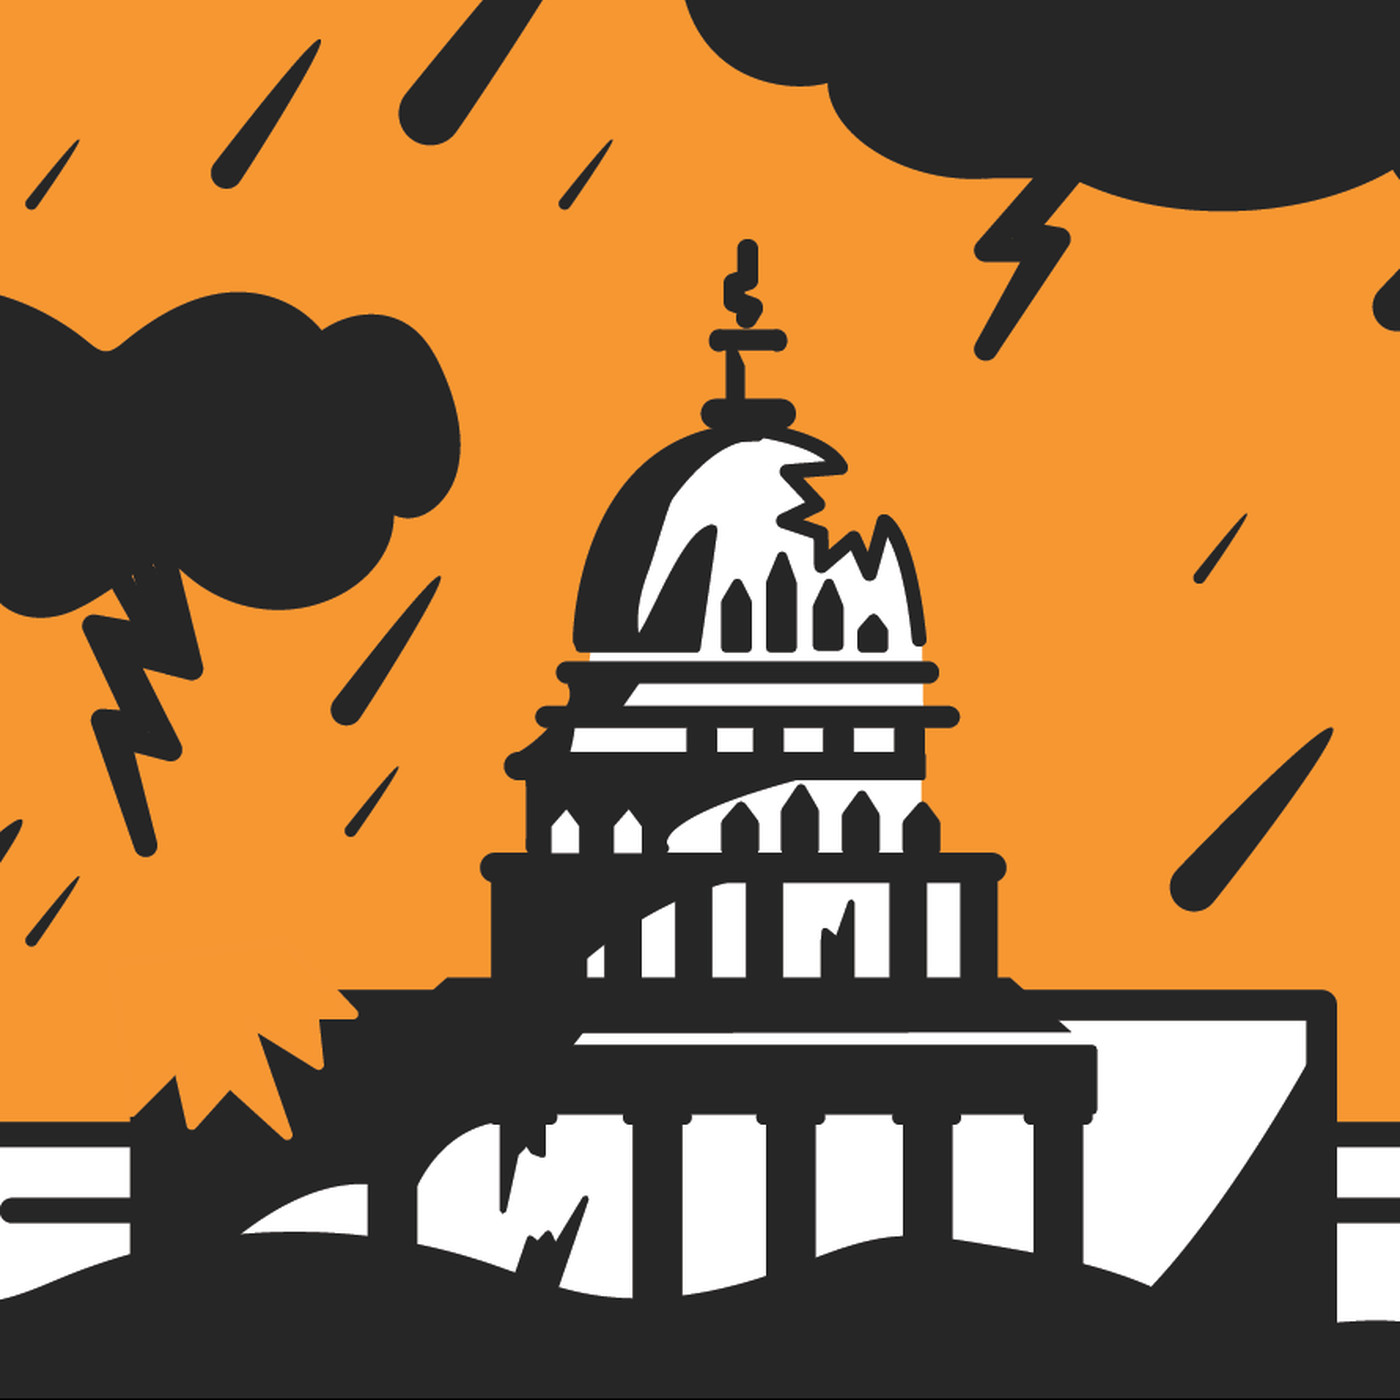 Is doomed vox . Democracy clipart culture american